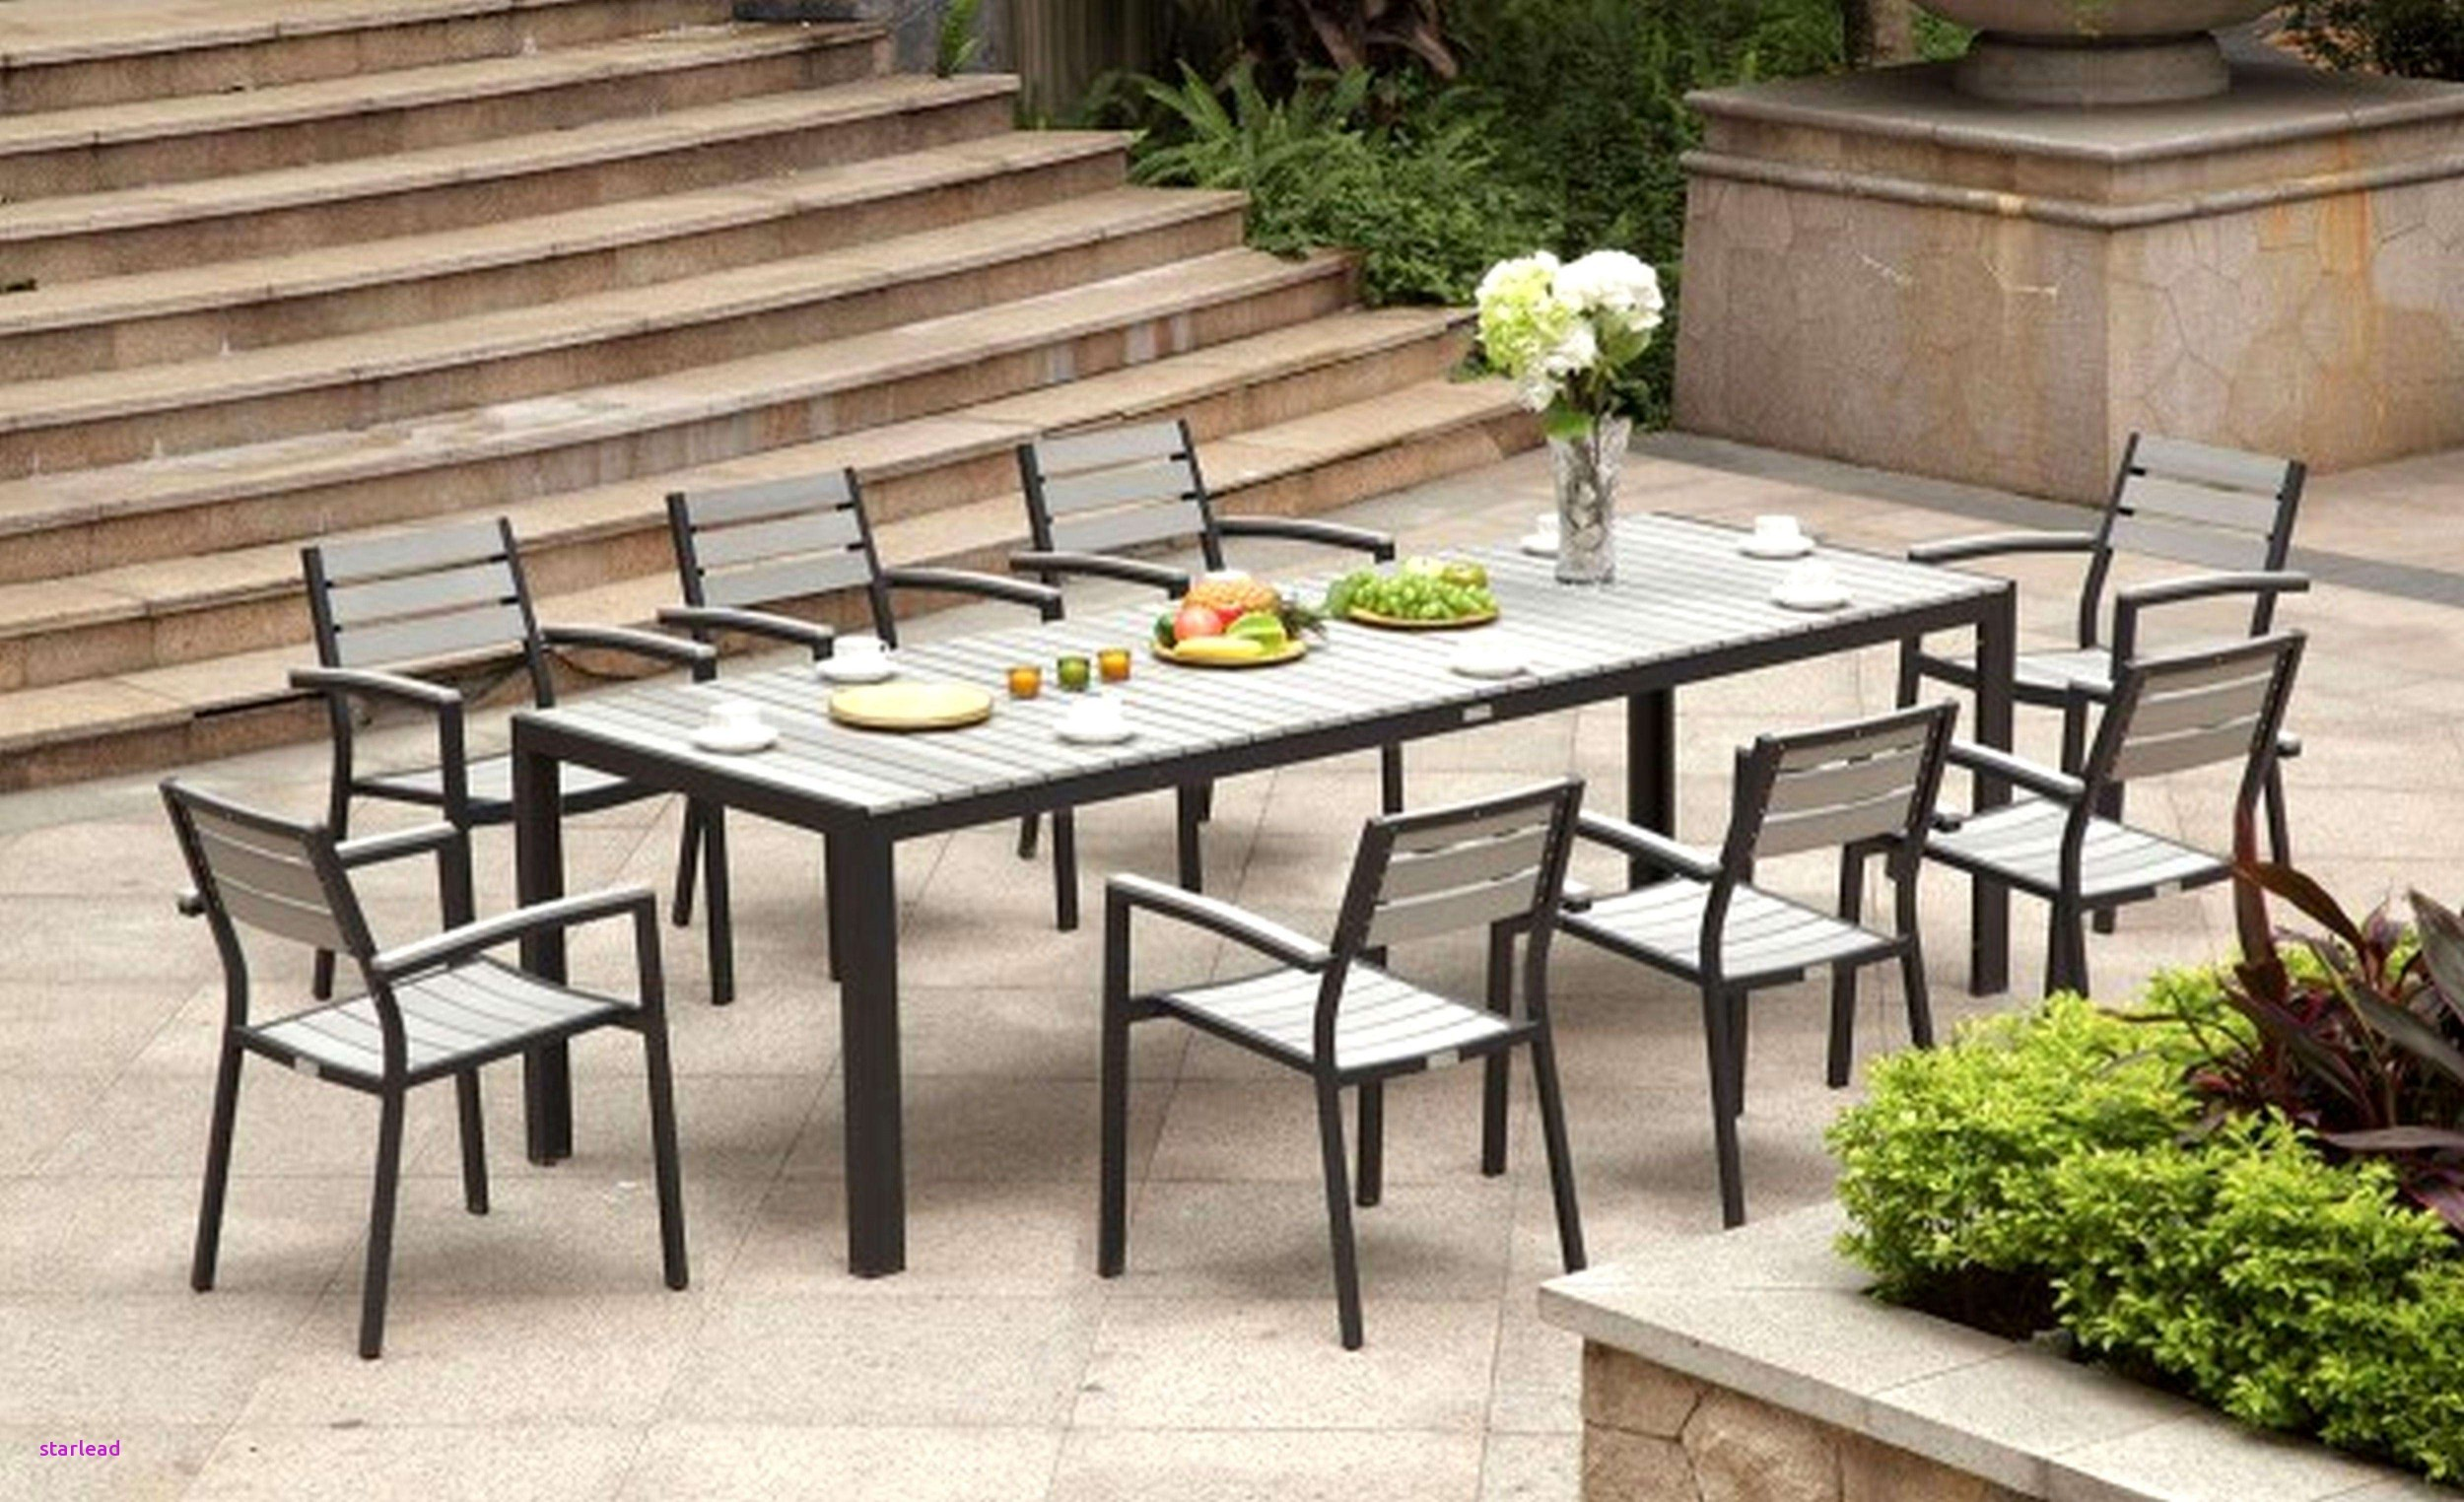 Lush Poly Patio Dining Table Ideas Od Patio Table Set Scheme Discount Patio Furniture Sets